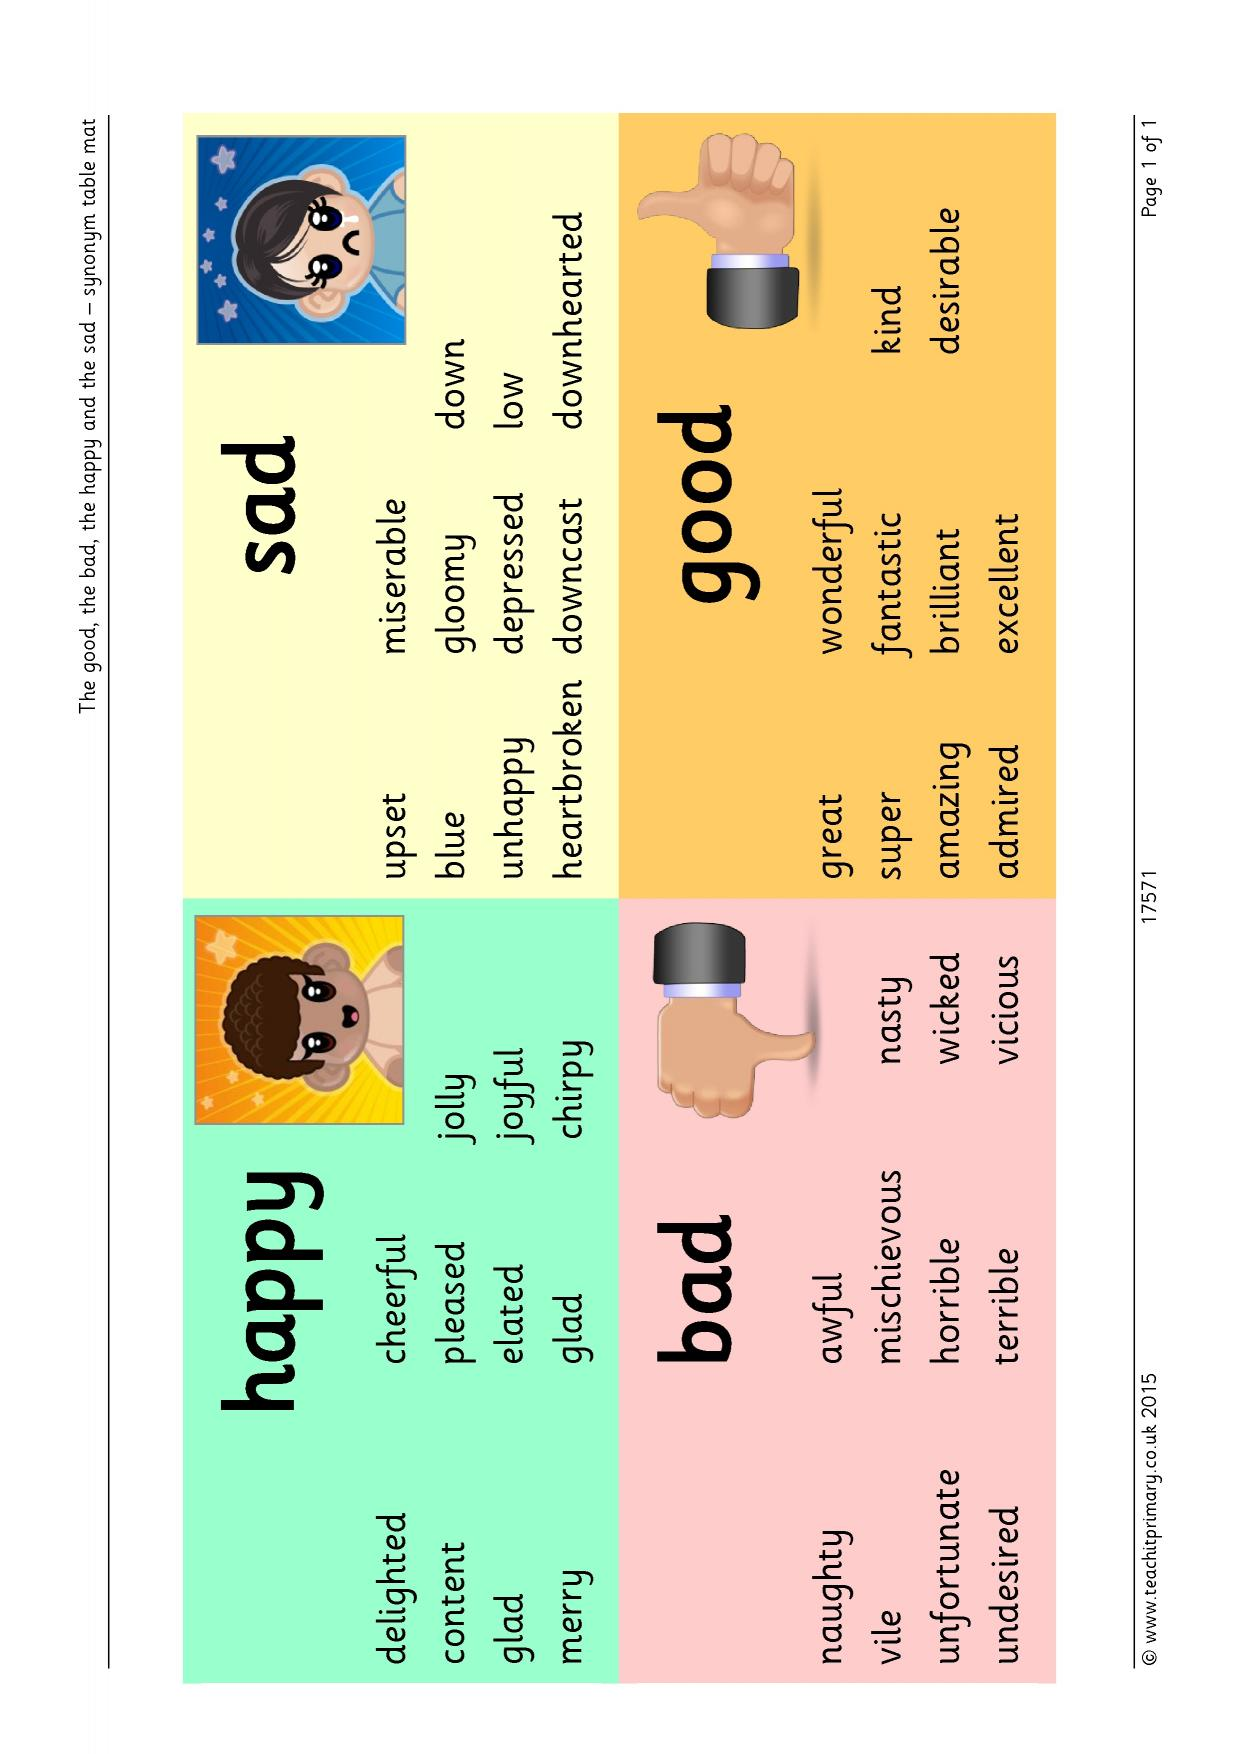 The good. the bad. the happy and the sad - synonym word mat - Synonyms and antonyms - Display - Home page